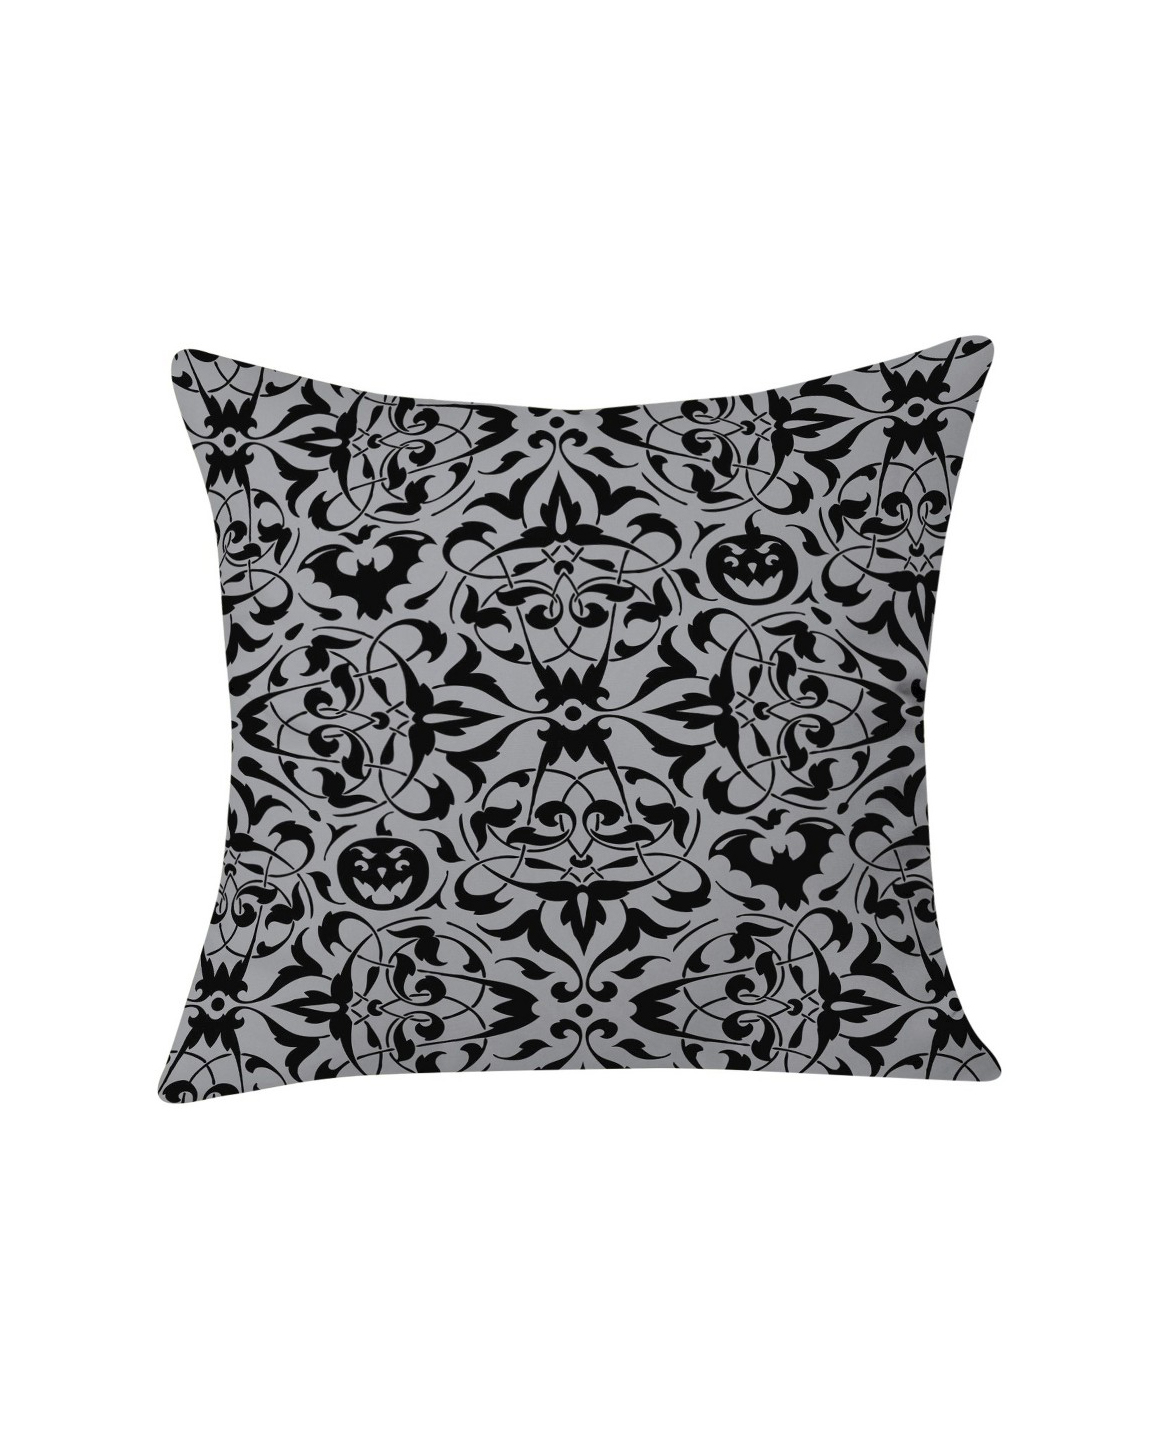 Gothic Pillow